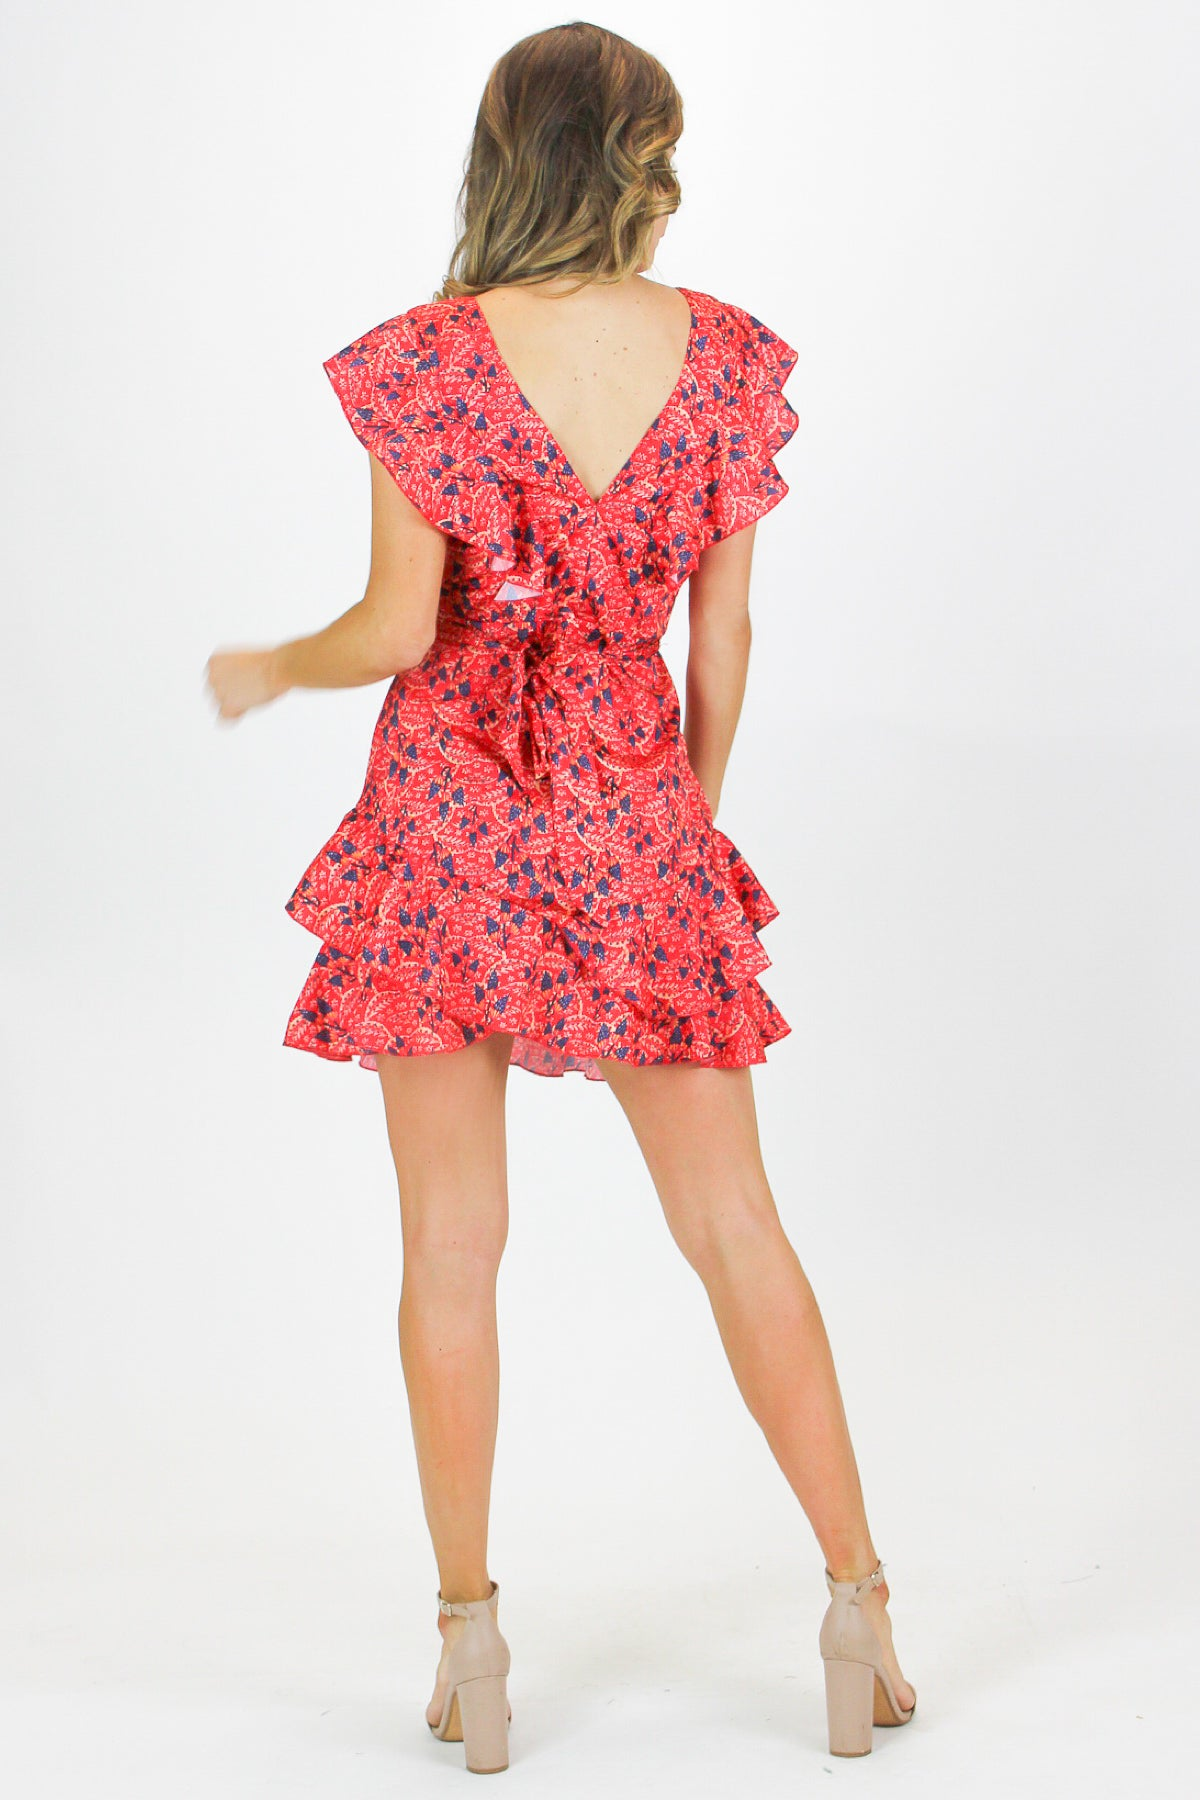 RED RUFFLE PRINTED DRESS